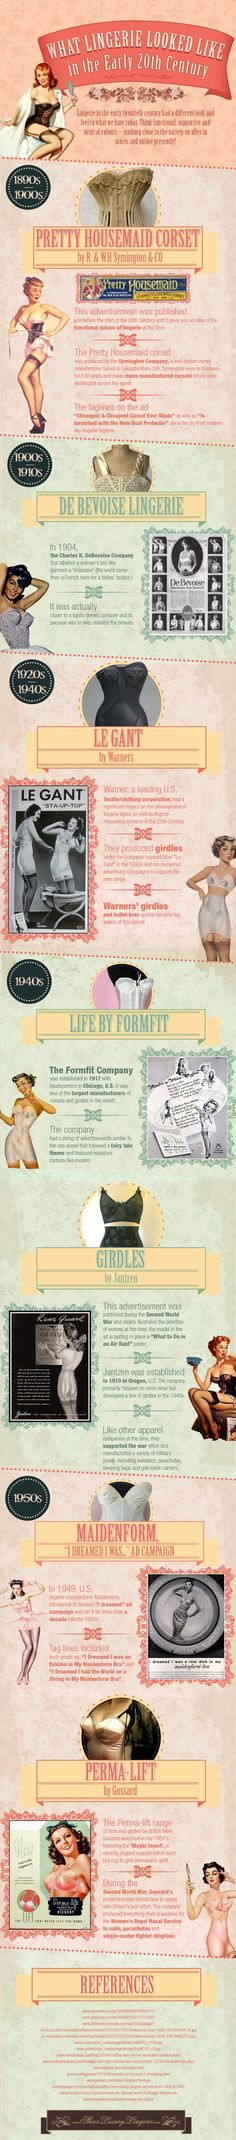 What Lingerie Looked Like in the Early 20th Century #infographic #Lingerie #History